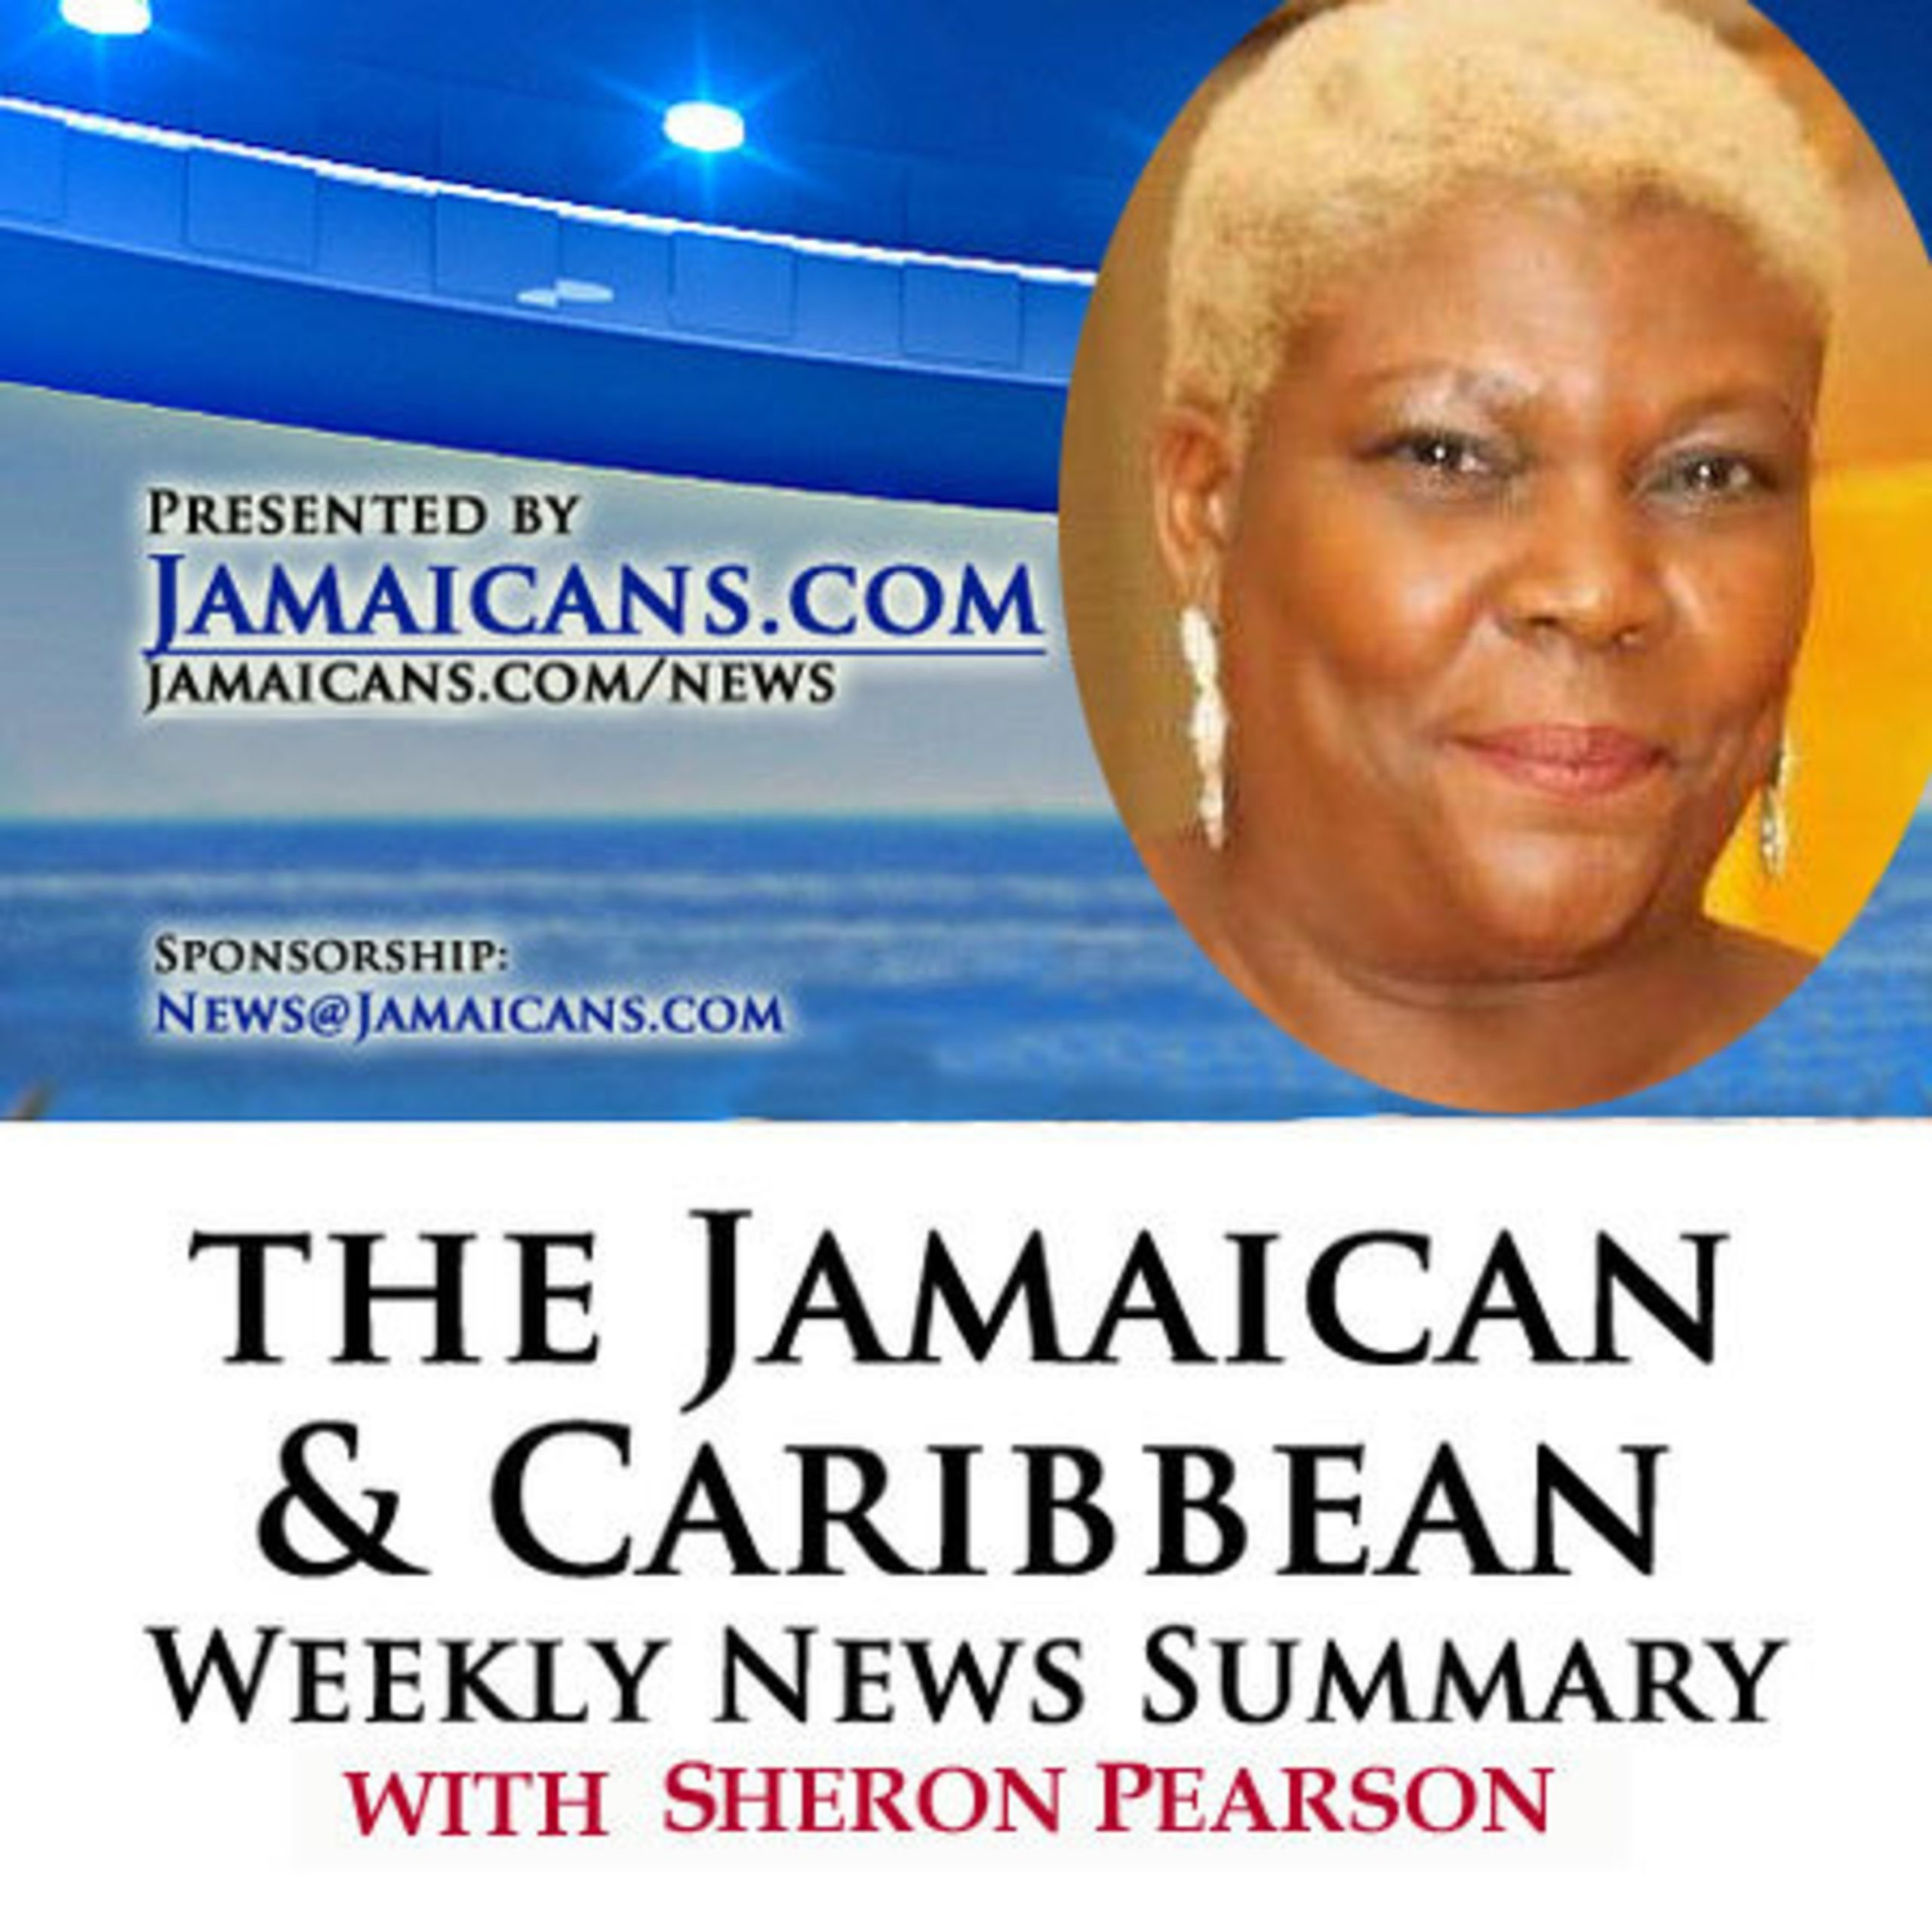 This is the Podcast of 7 Jamaican & Caribbean News Stories You May Have missed for the week ending August 30, 2019.